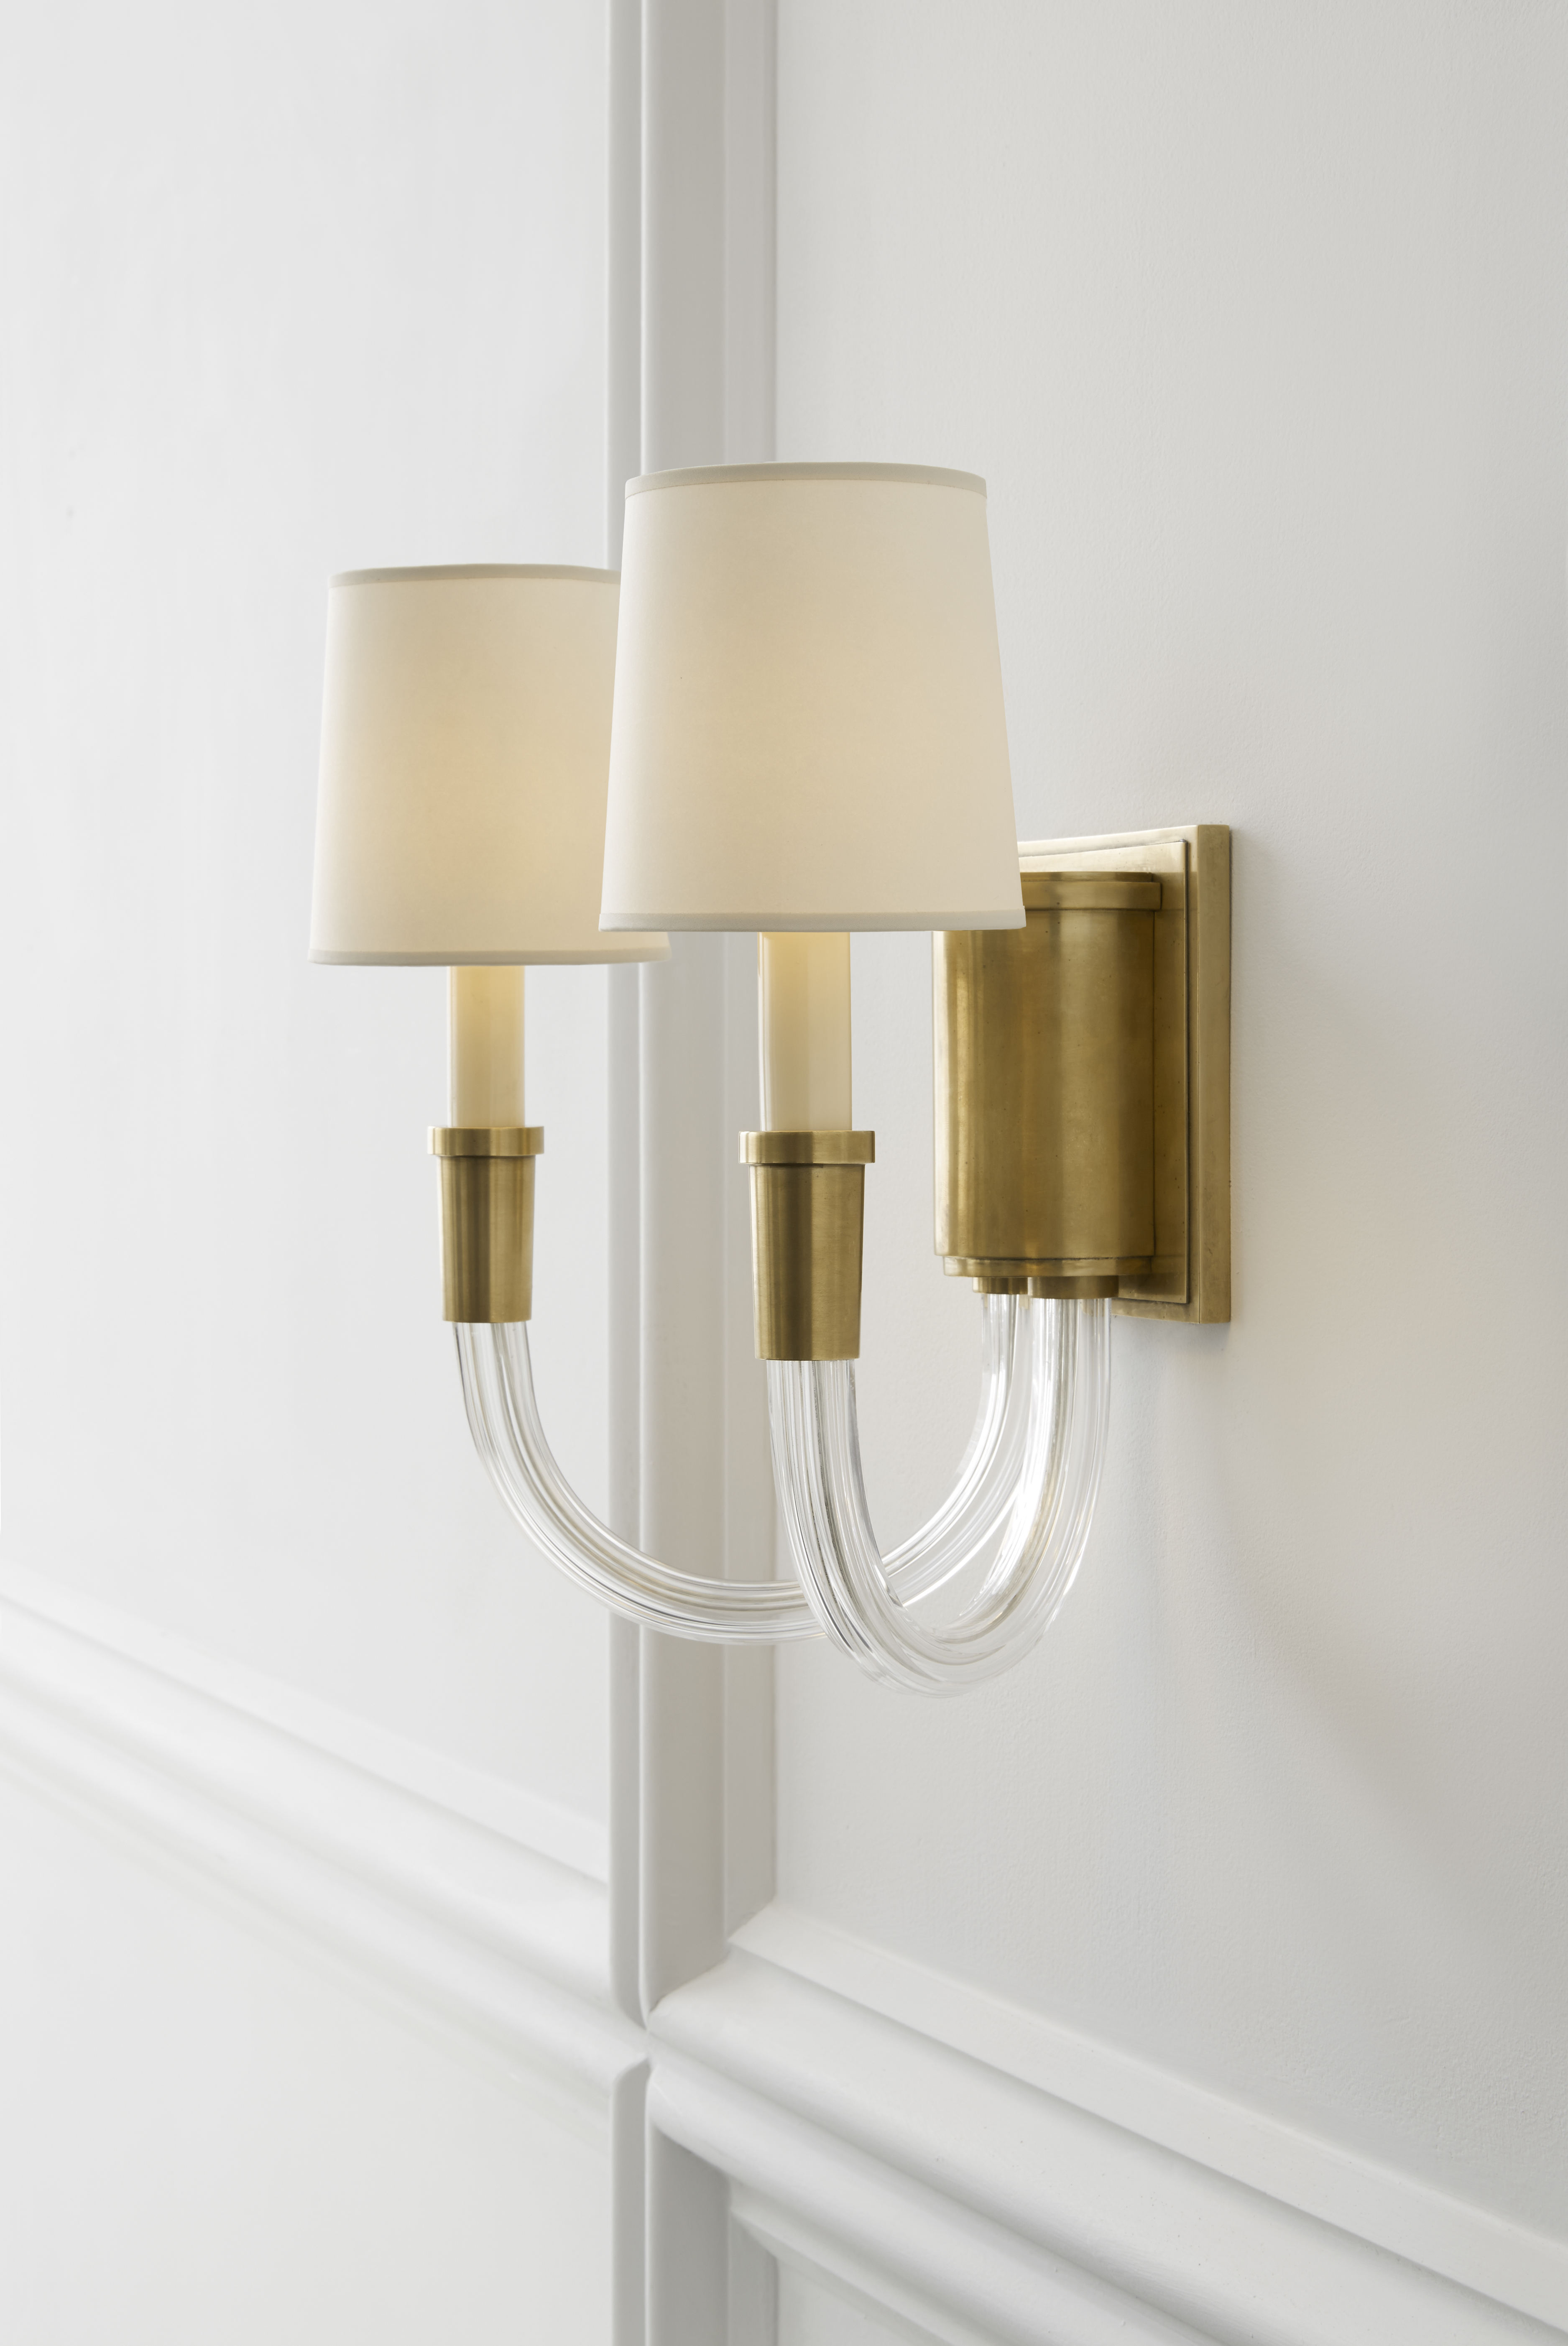 wall comfort pin pinterest sconce visual inch reed oxford